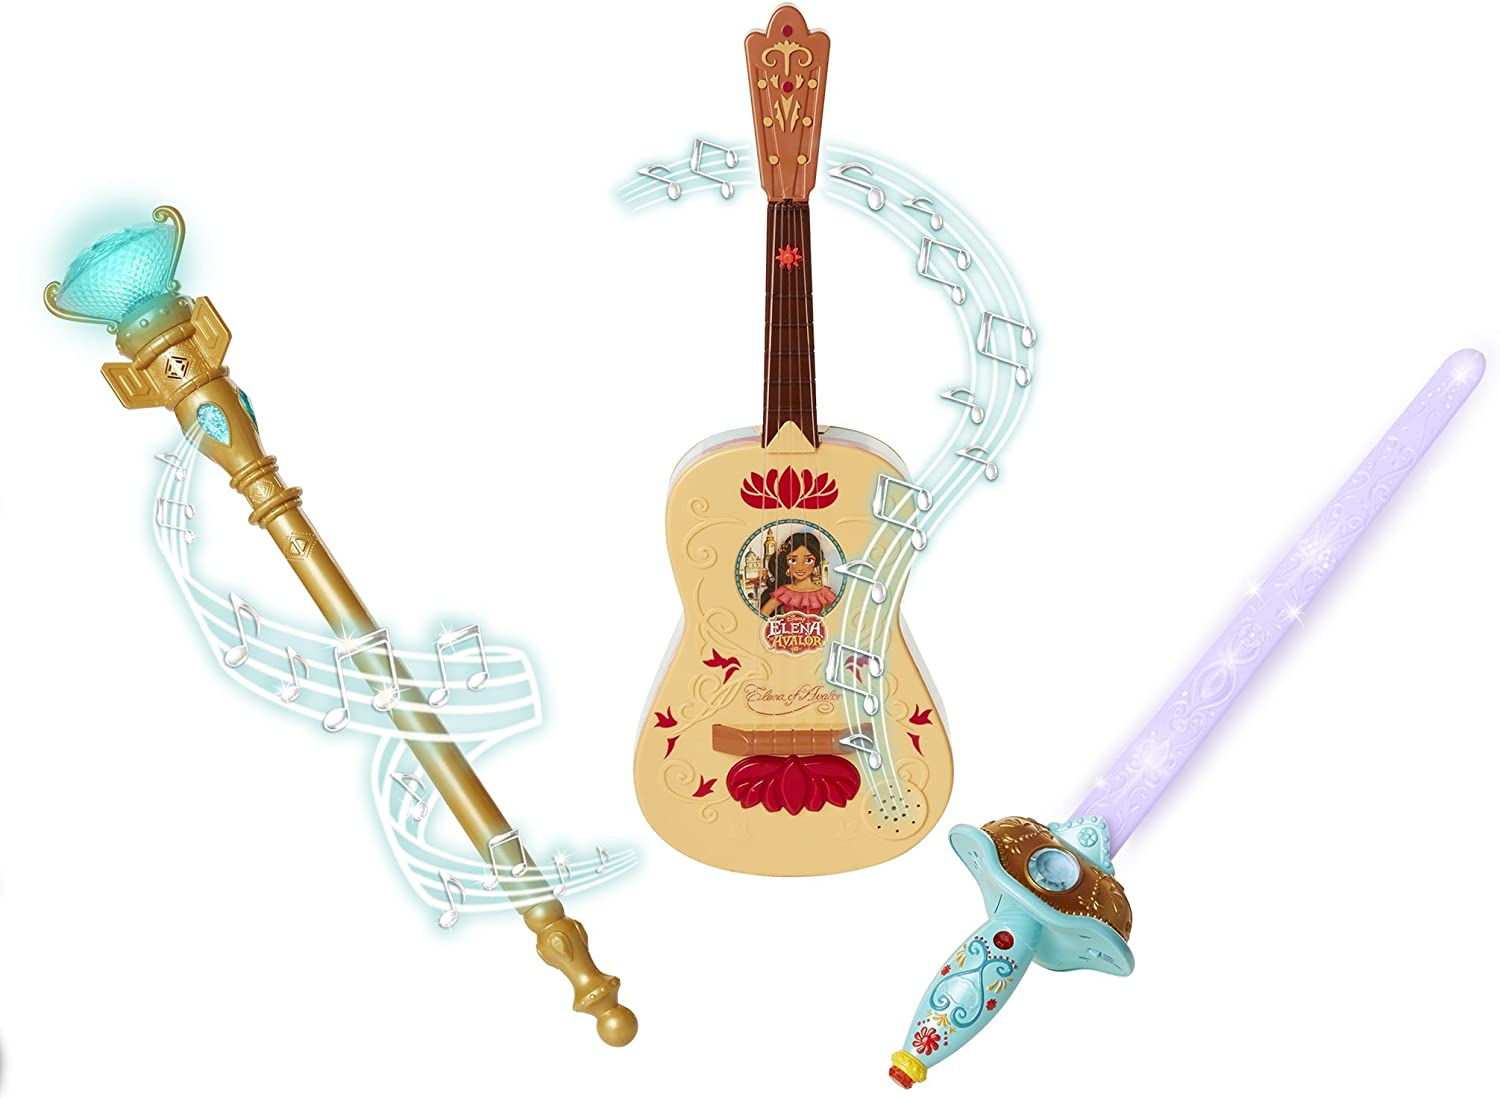 Elena Of Avalor Triple Power Pack (Guitar, Sword, Scepter) Toy